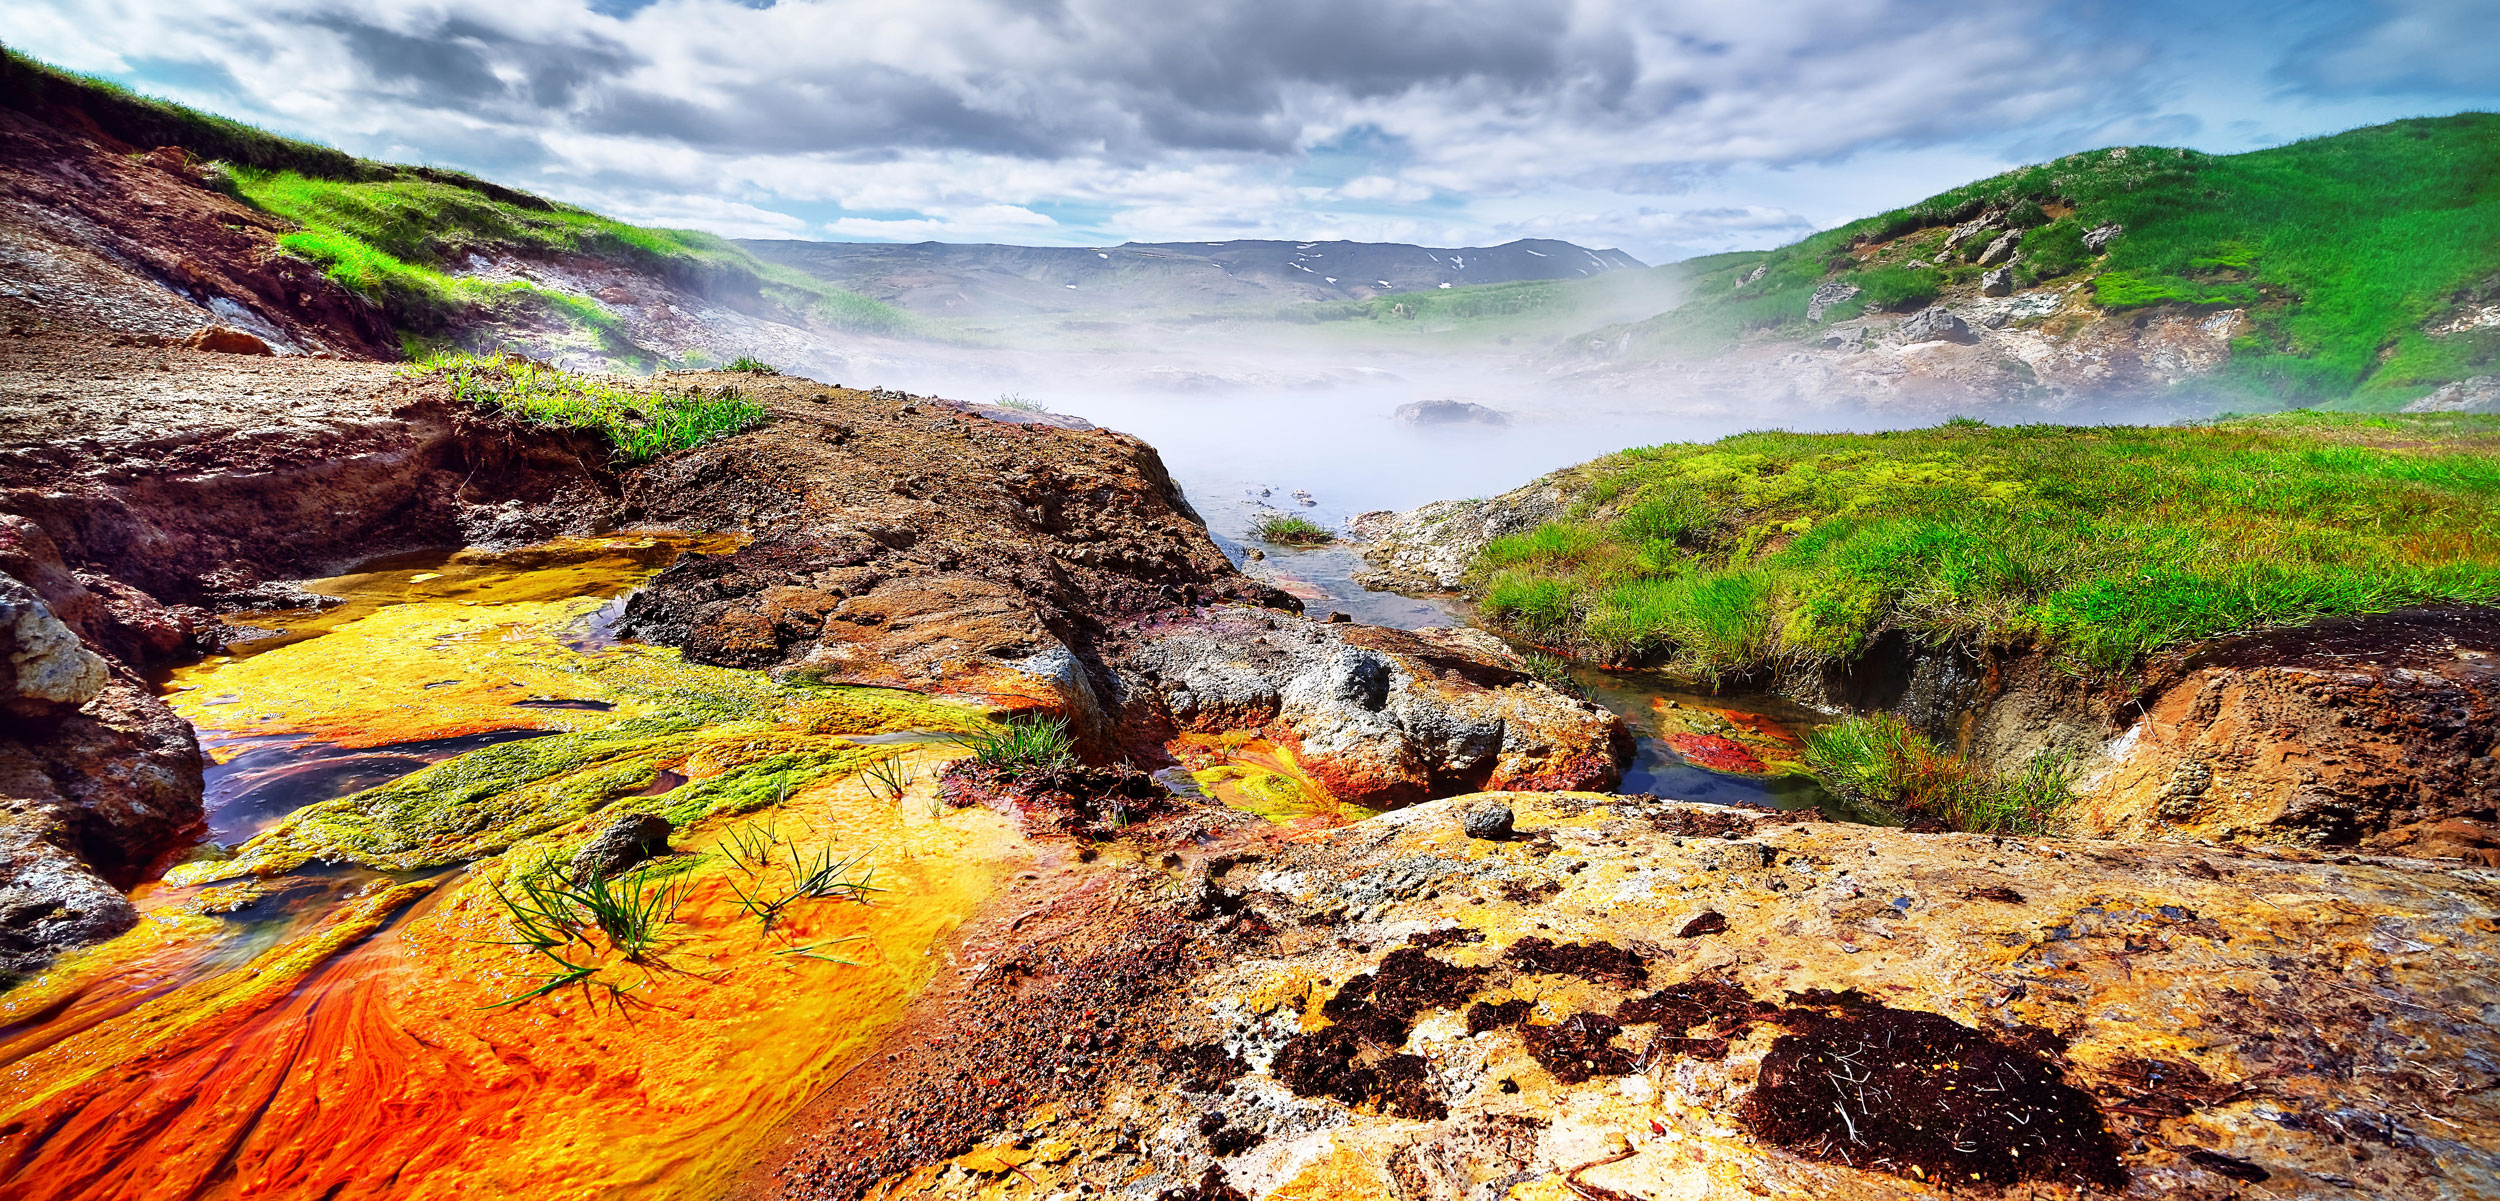 Geothermal area with very colorful deposits in Hengill, Iceland